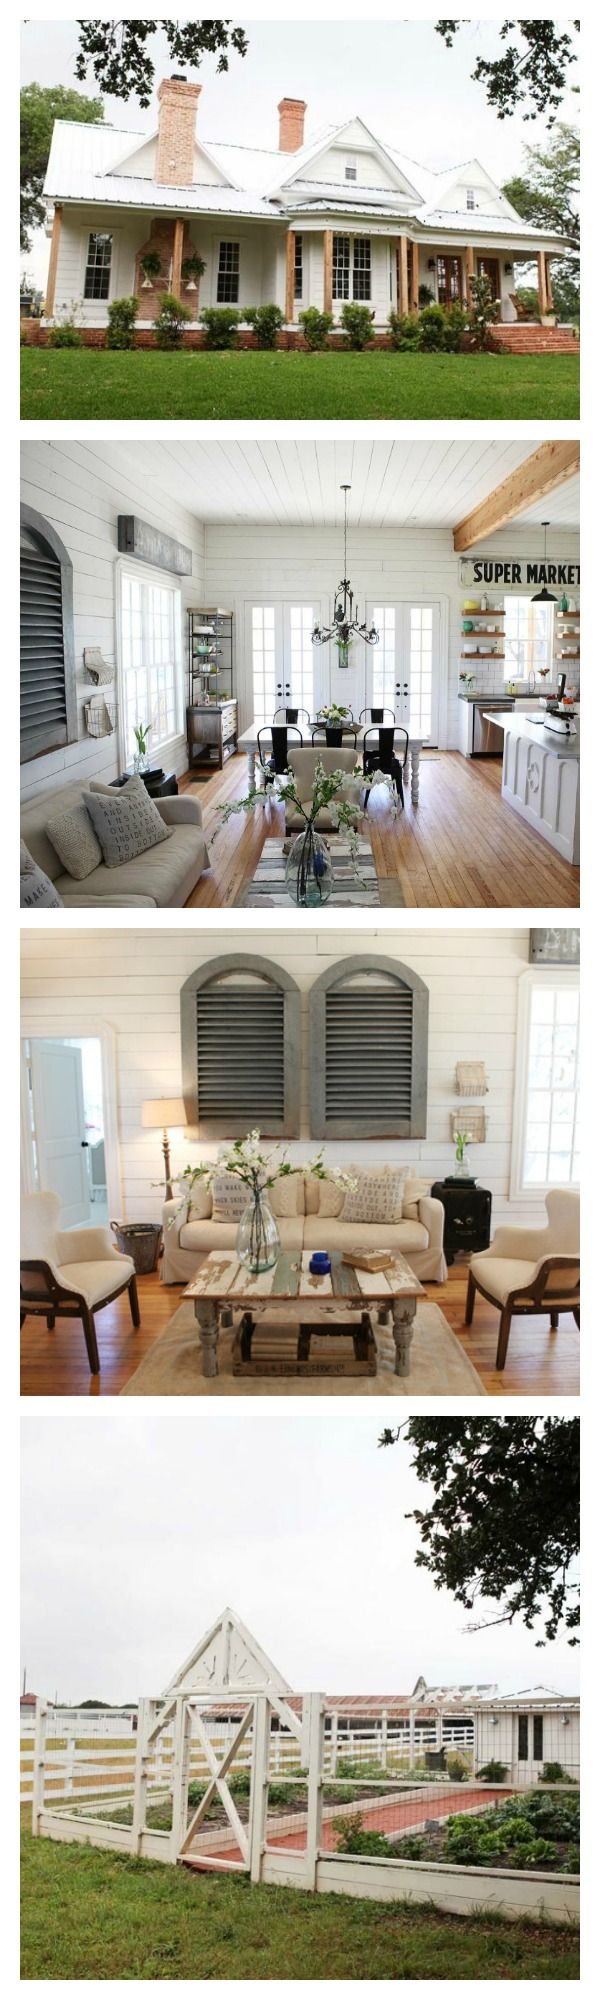 What Software Does Joanna Gaines Use : software, joanna, gaines, Joanna, Gaines's, Shiplap-Filled, Farmhouse, House, Styles,, Gaines, Farmhouse,